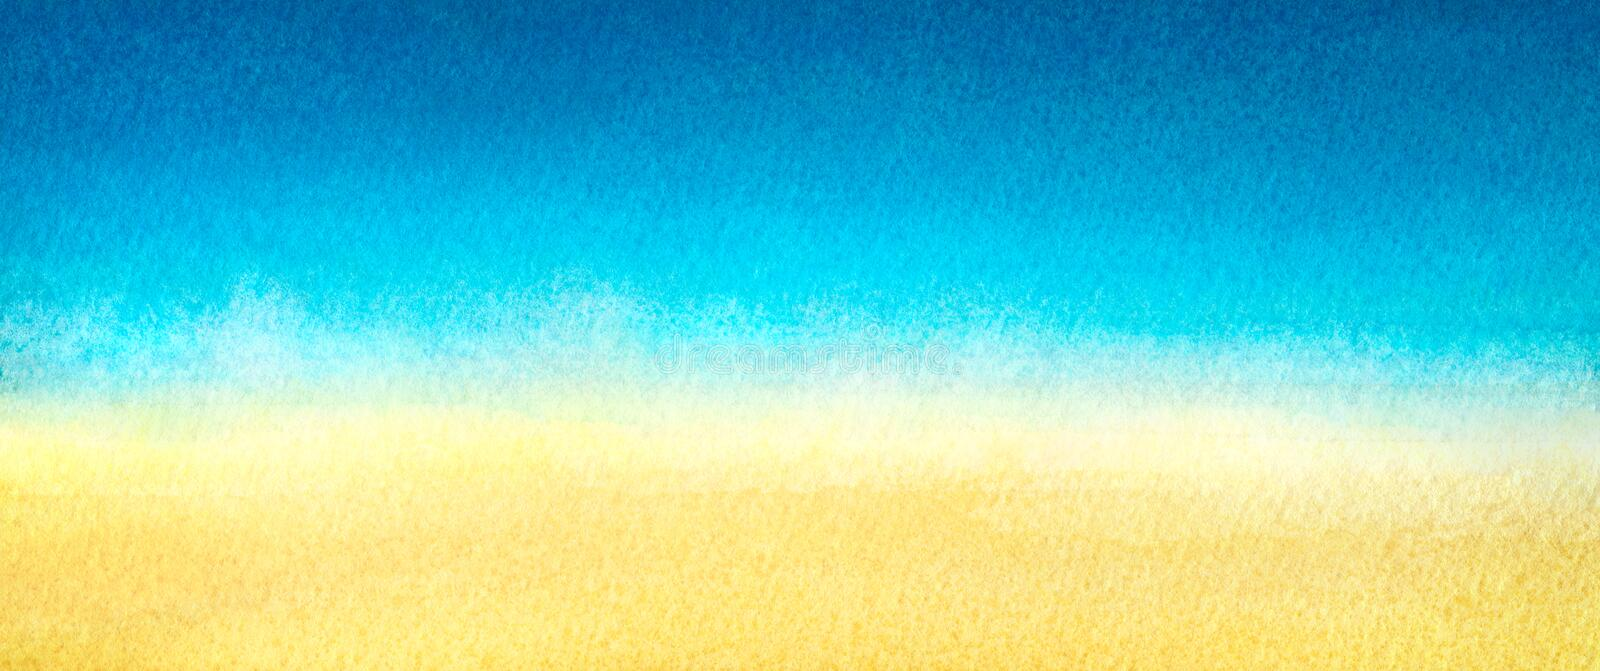 Web banner light blue to warm yellow abstract sea and beach gradient painted in watercolor on clean white background stock illustration